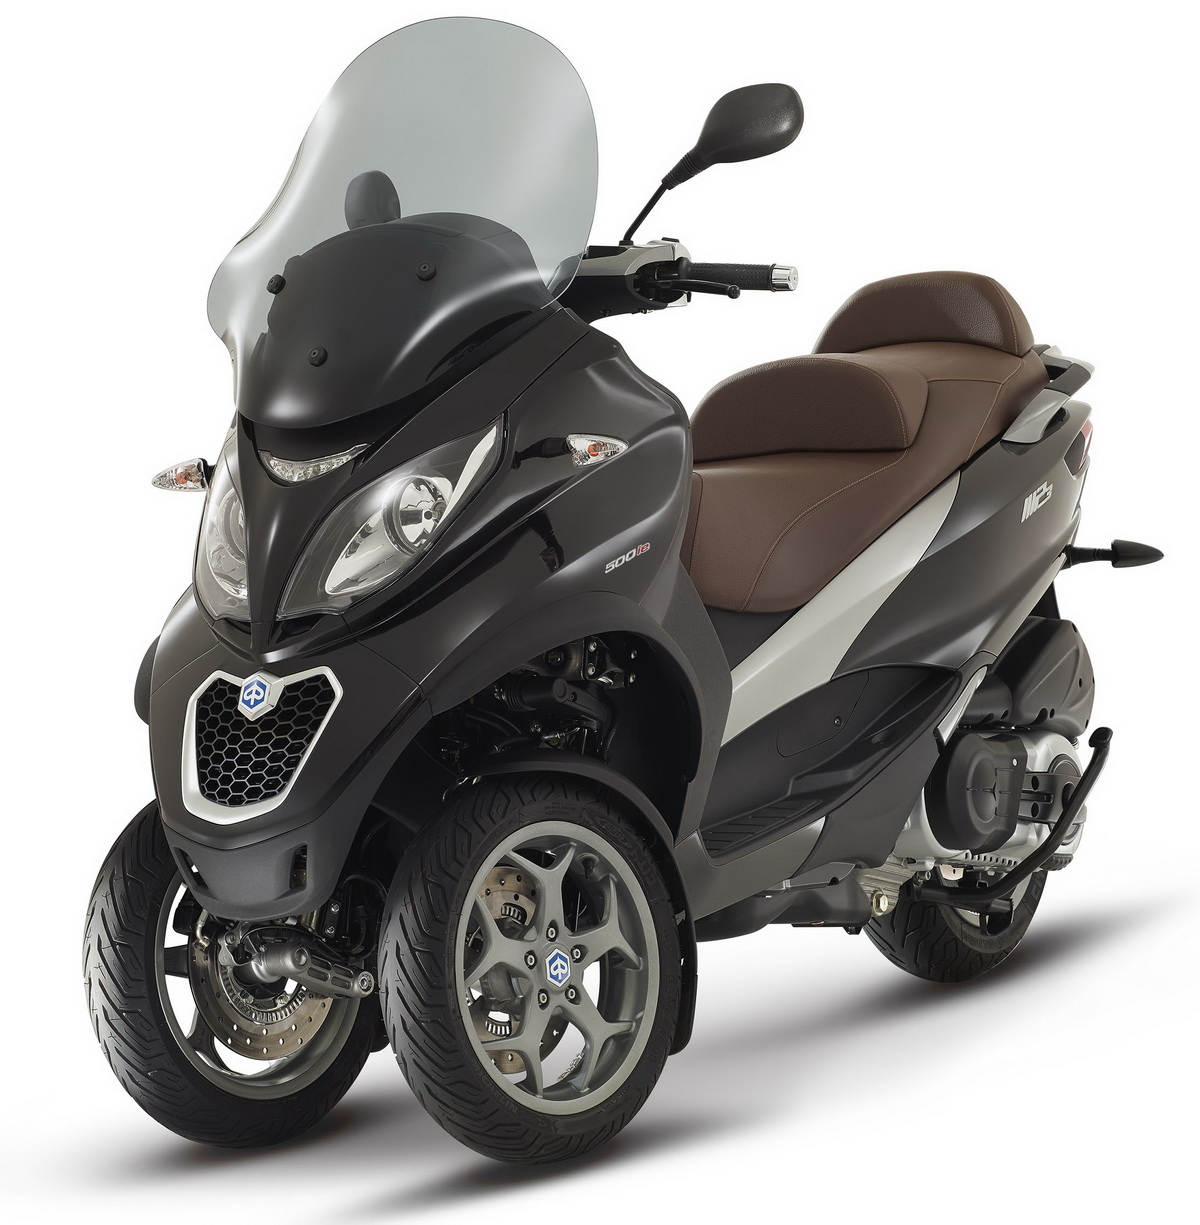 piaggio 2014 beverly 350 s xevo 250 mp3 500 abs asr scooternet. Black Bedroom Furniture Sets. Home Design Ideas